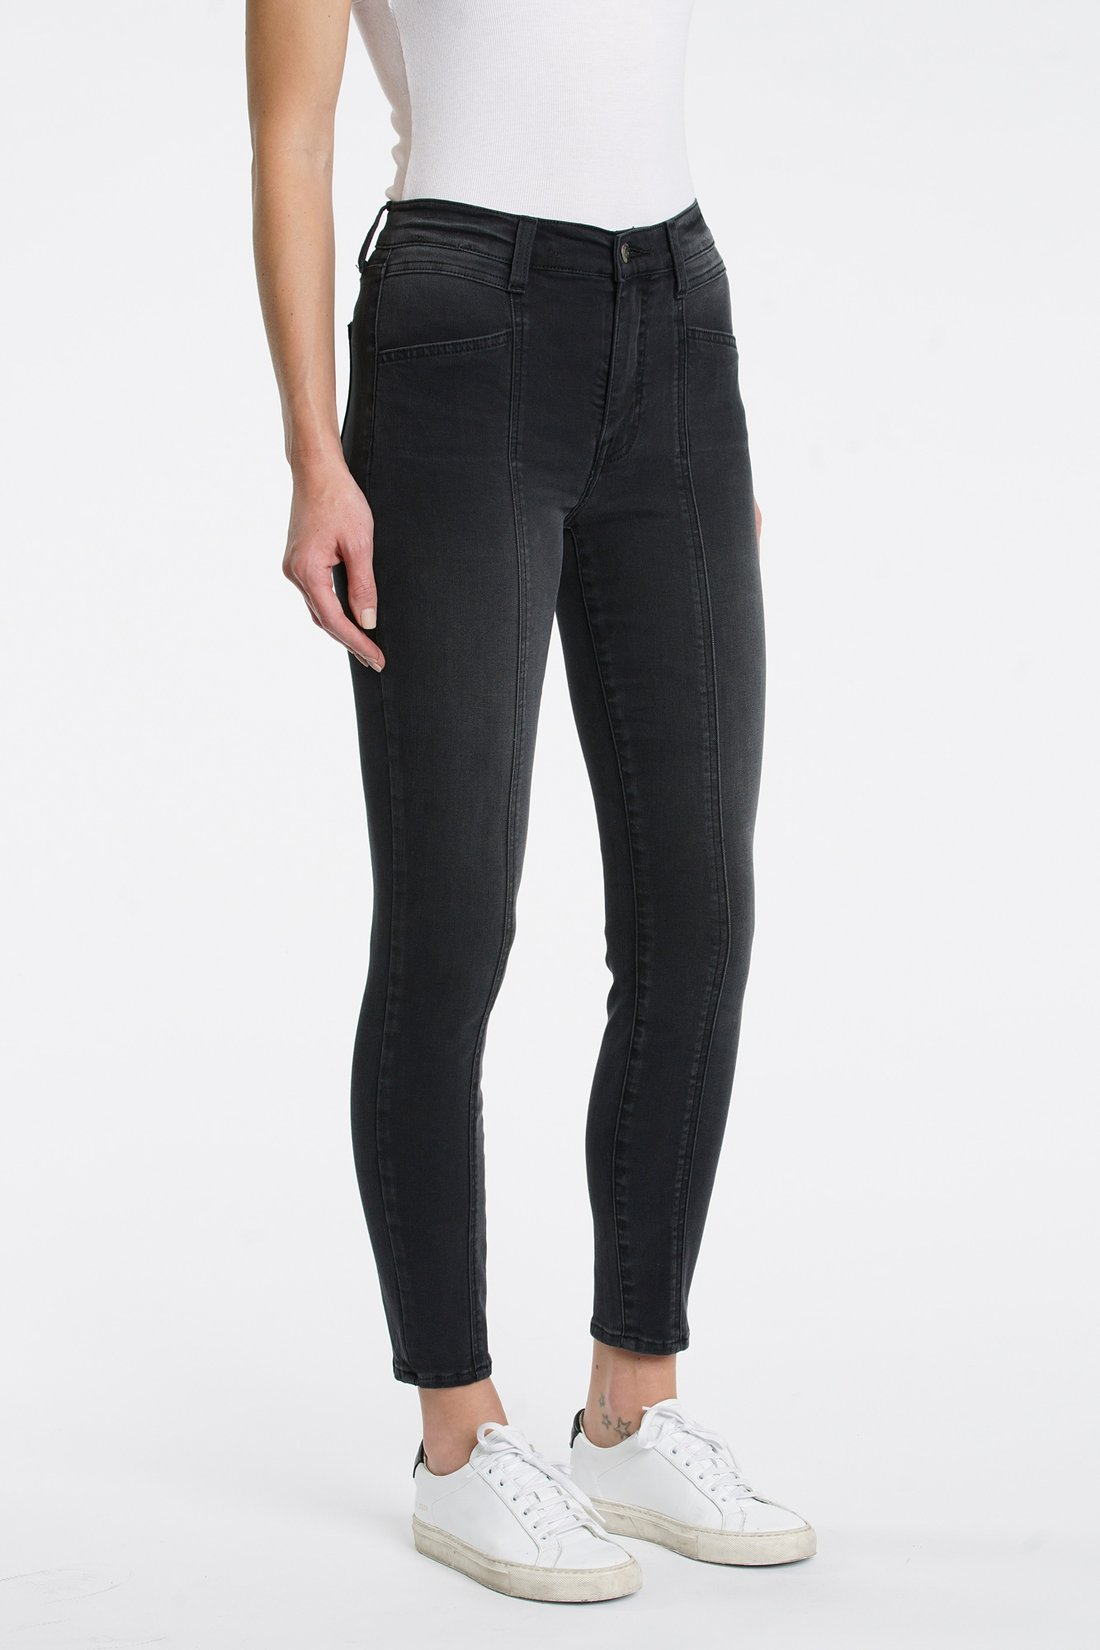 Pistola Amanda High Rise Jeans in 6am